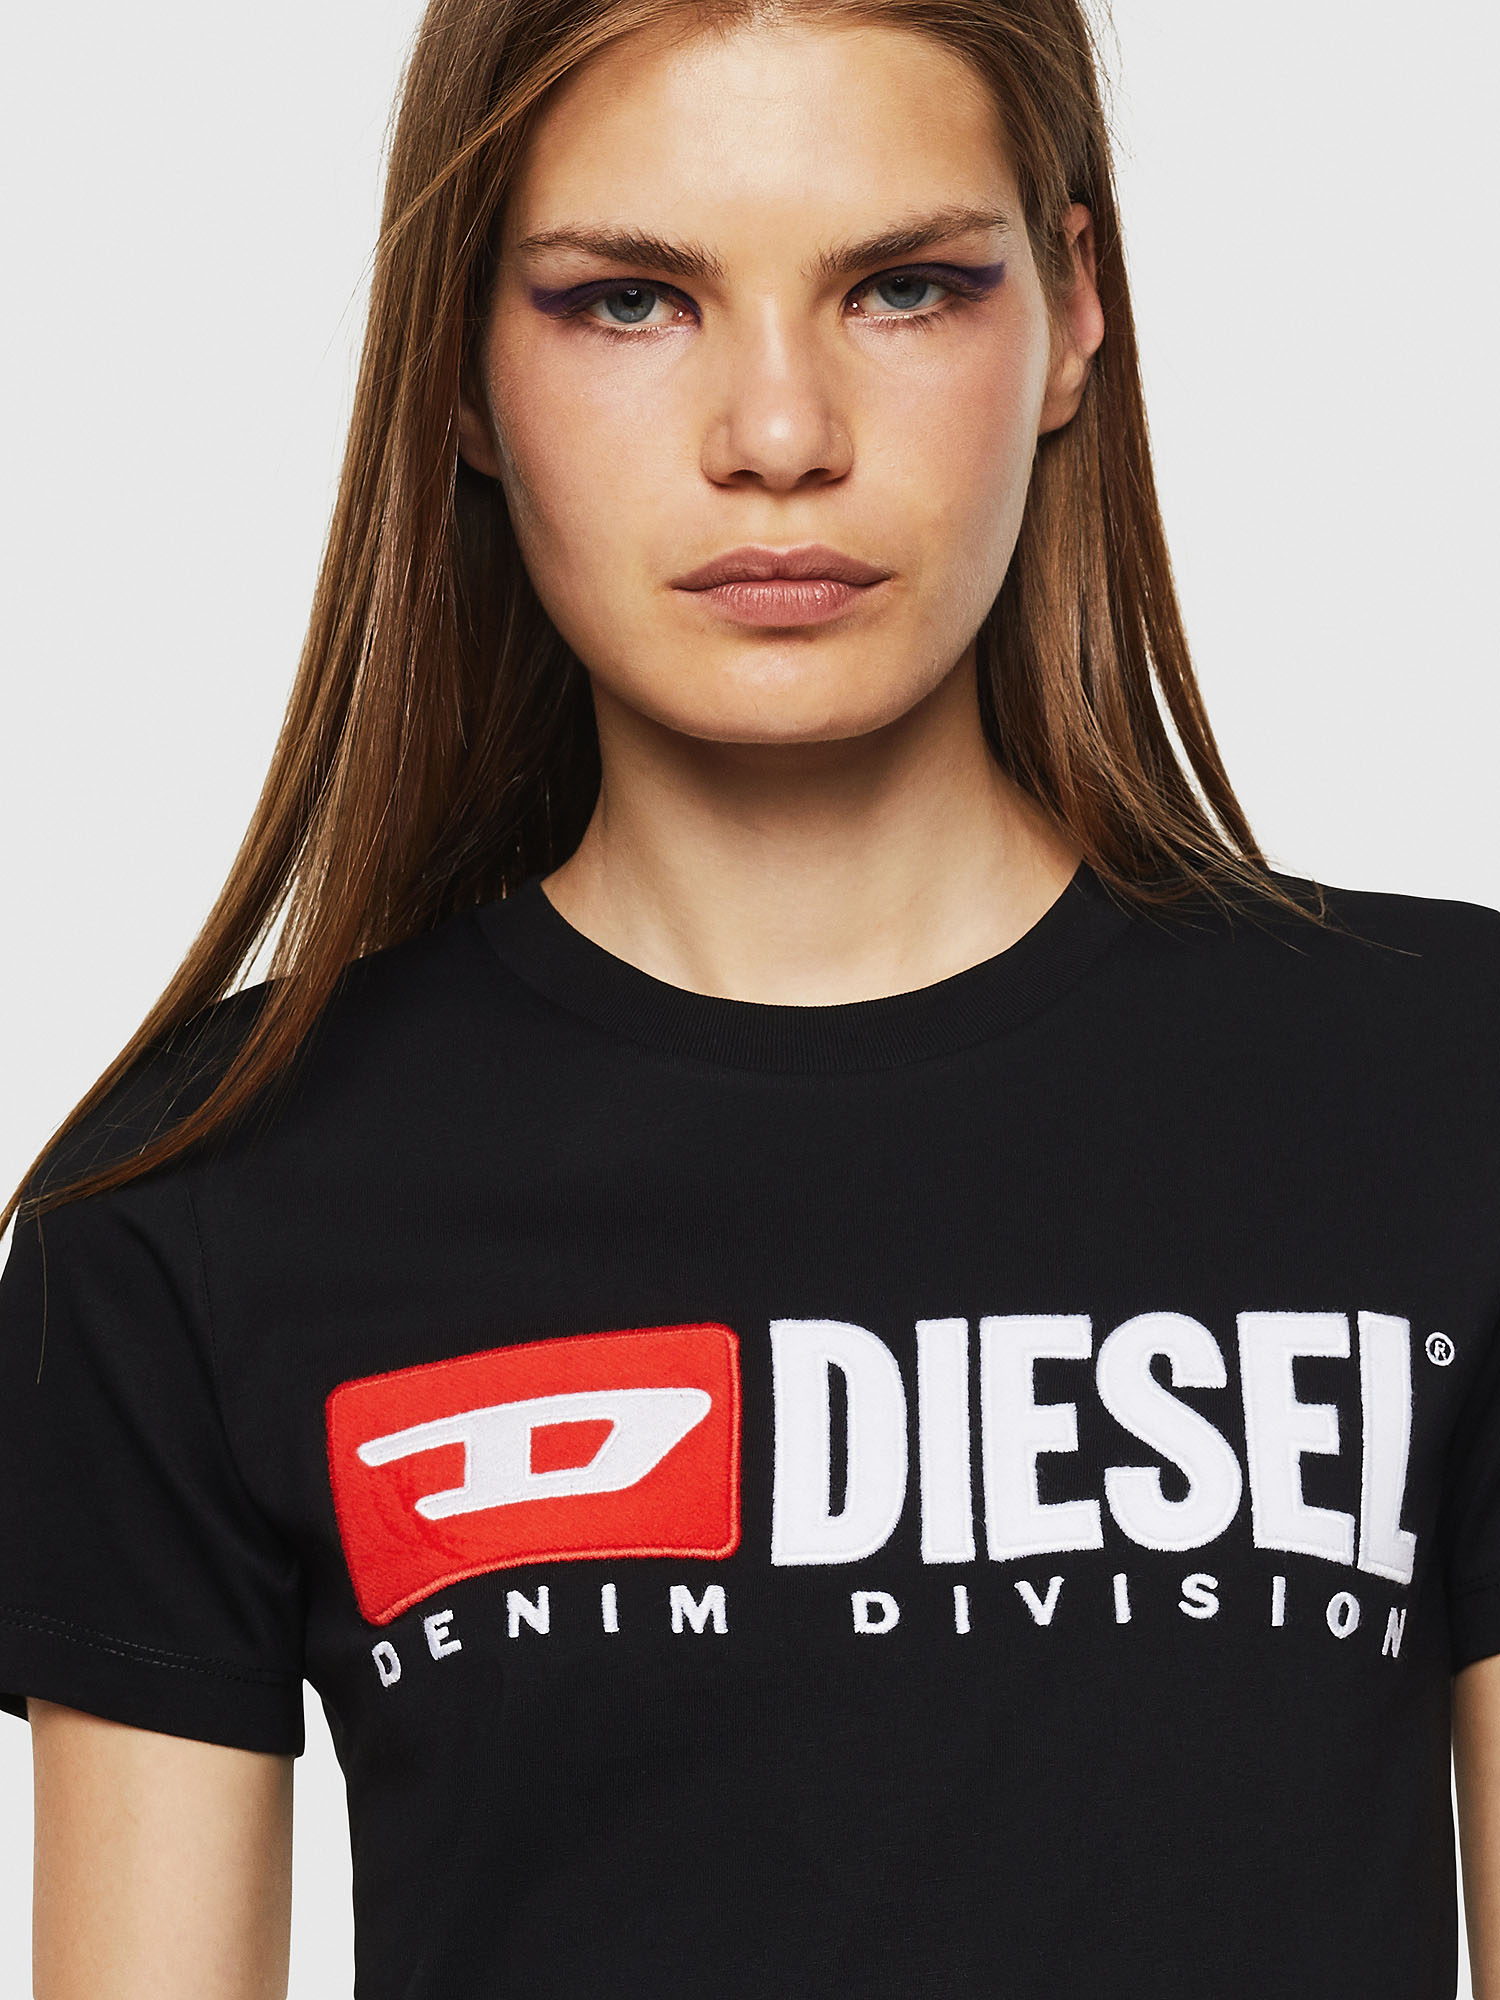 Diesel - T-SILY-DIVISION,  - T-Shirts - Image 3